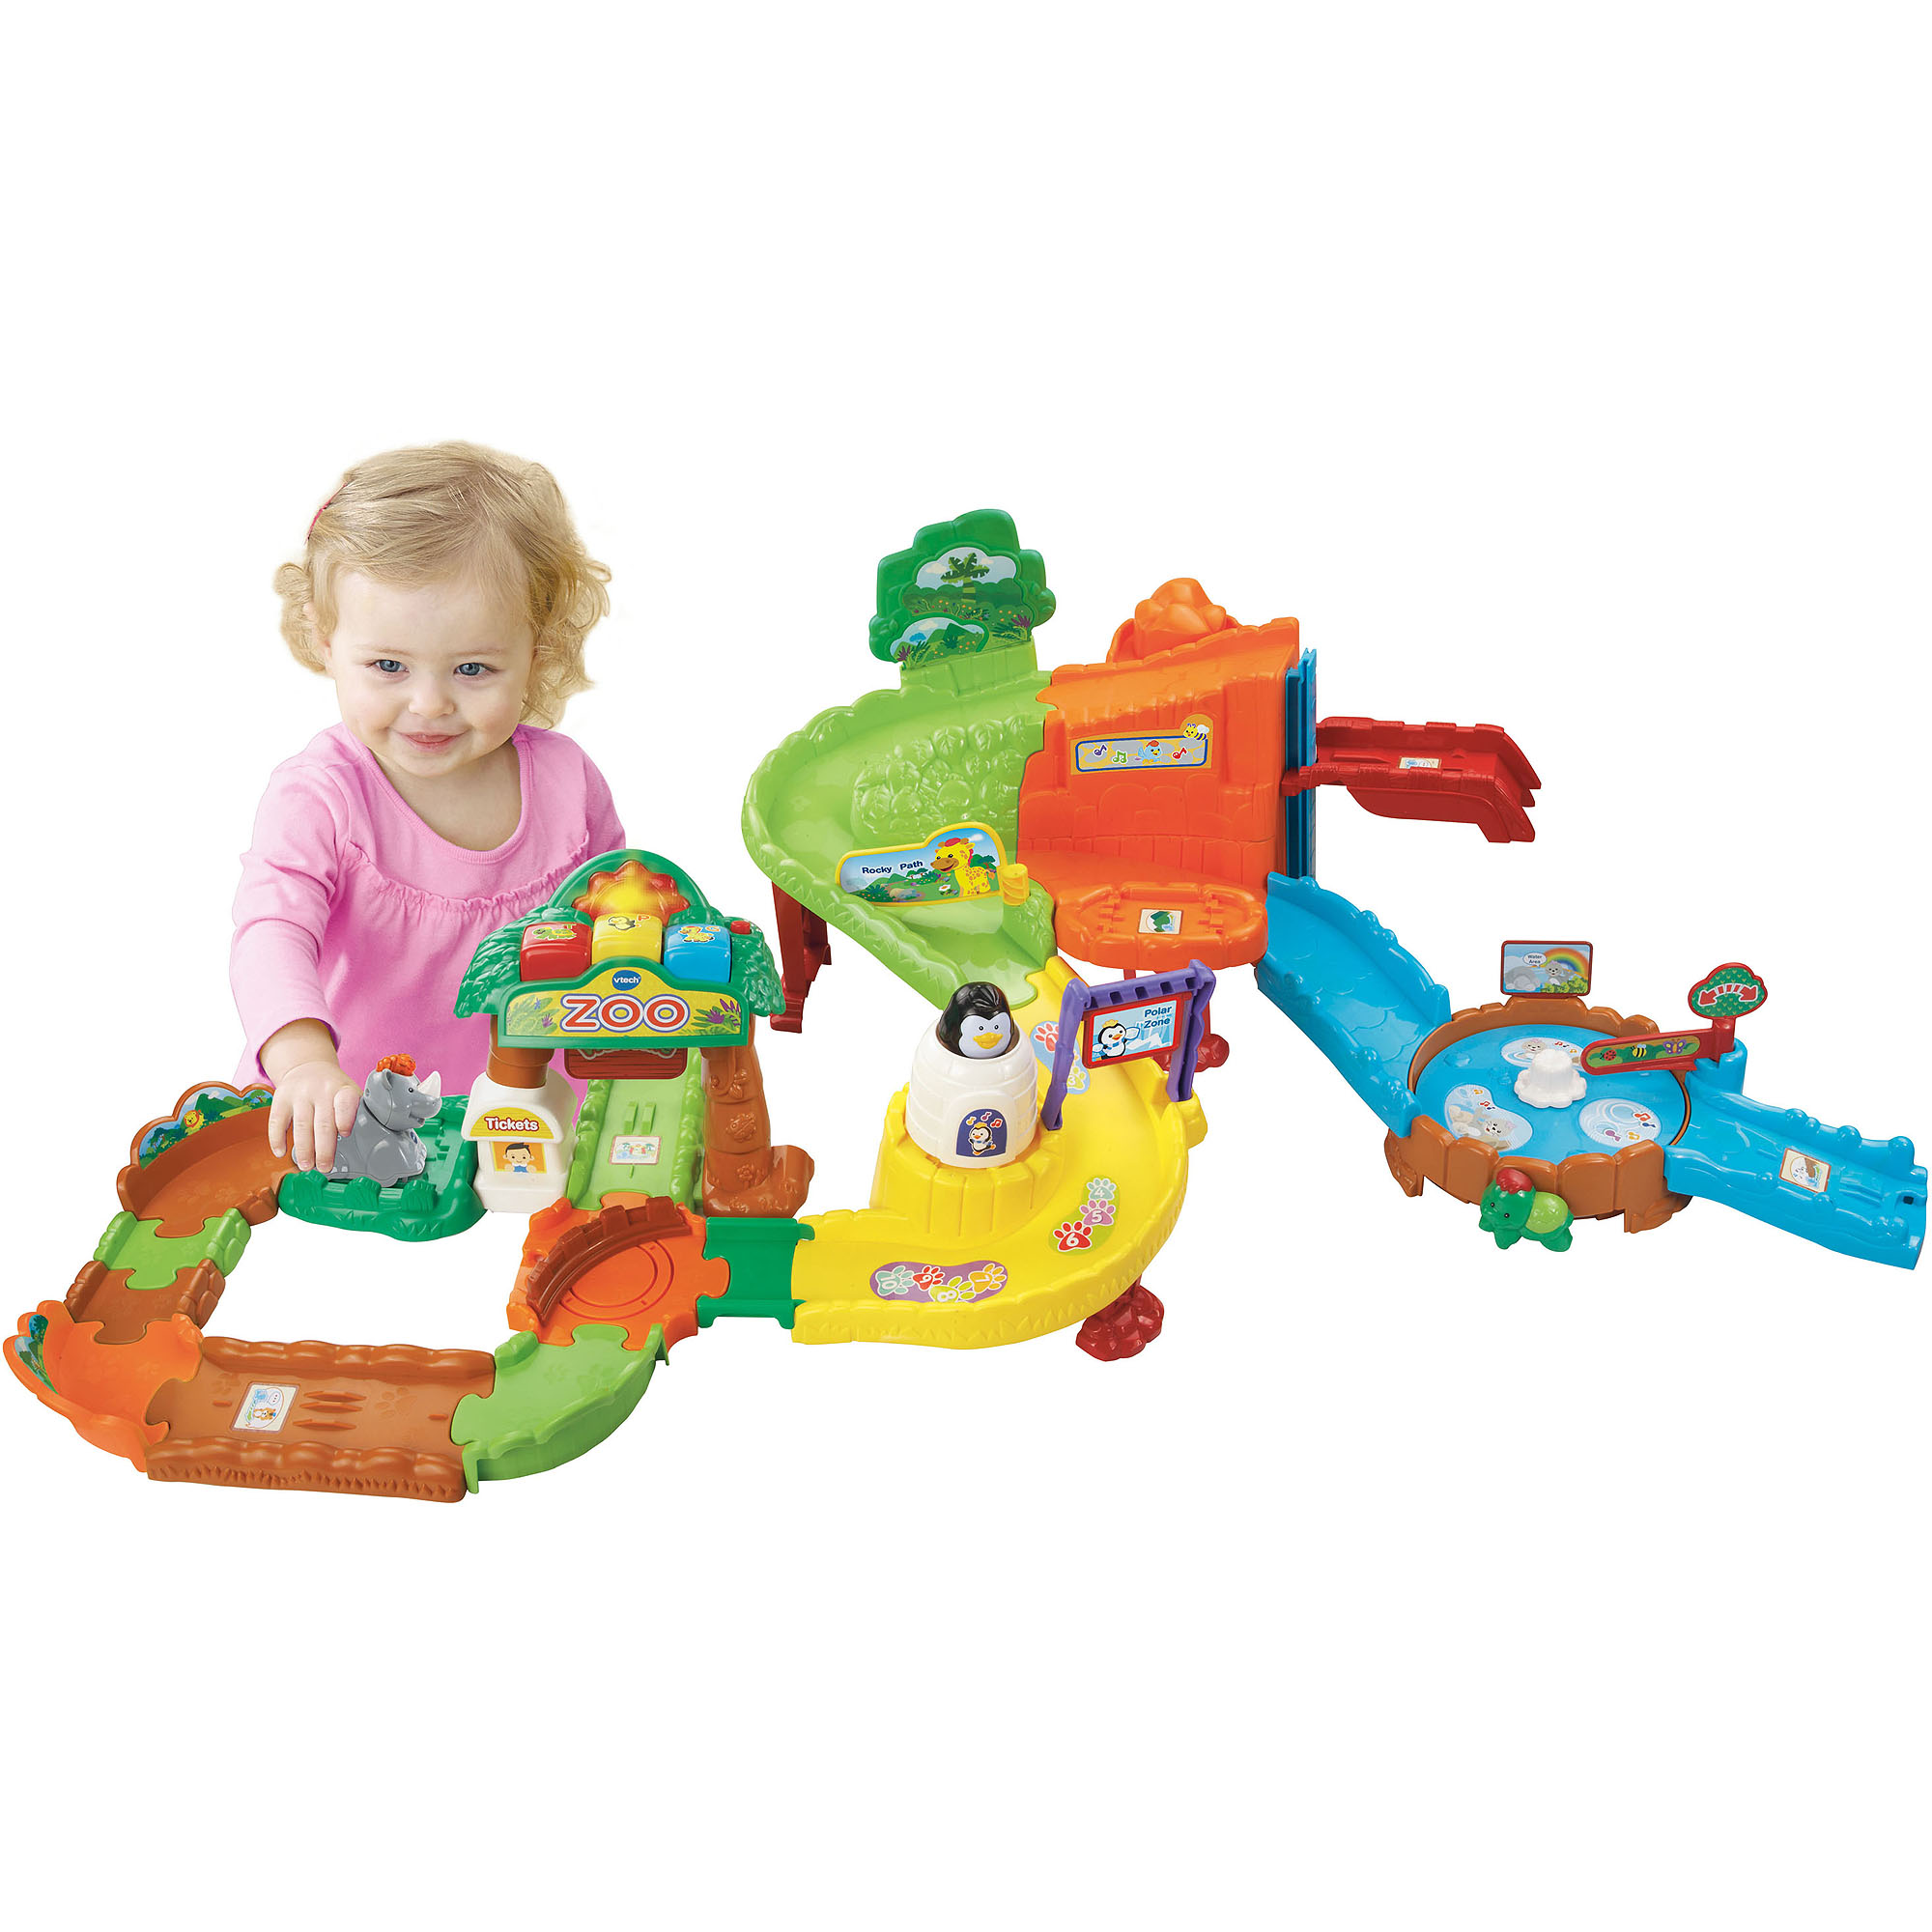 VTech Go Go Smart Animals Zoo Explorers Playset Walmart